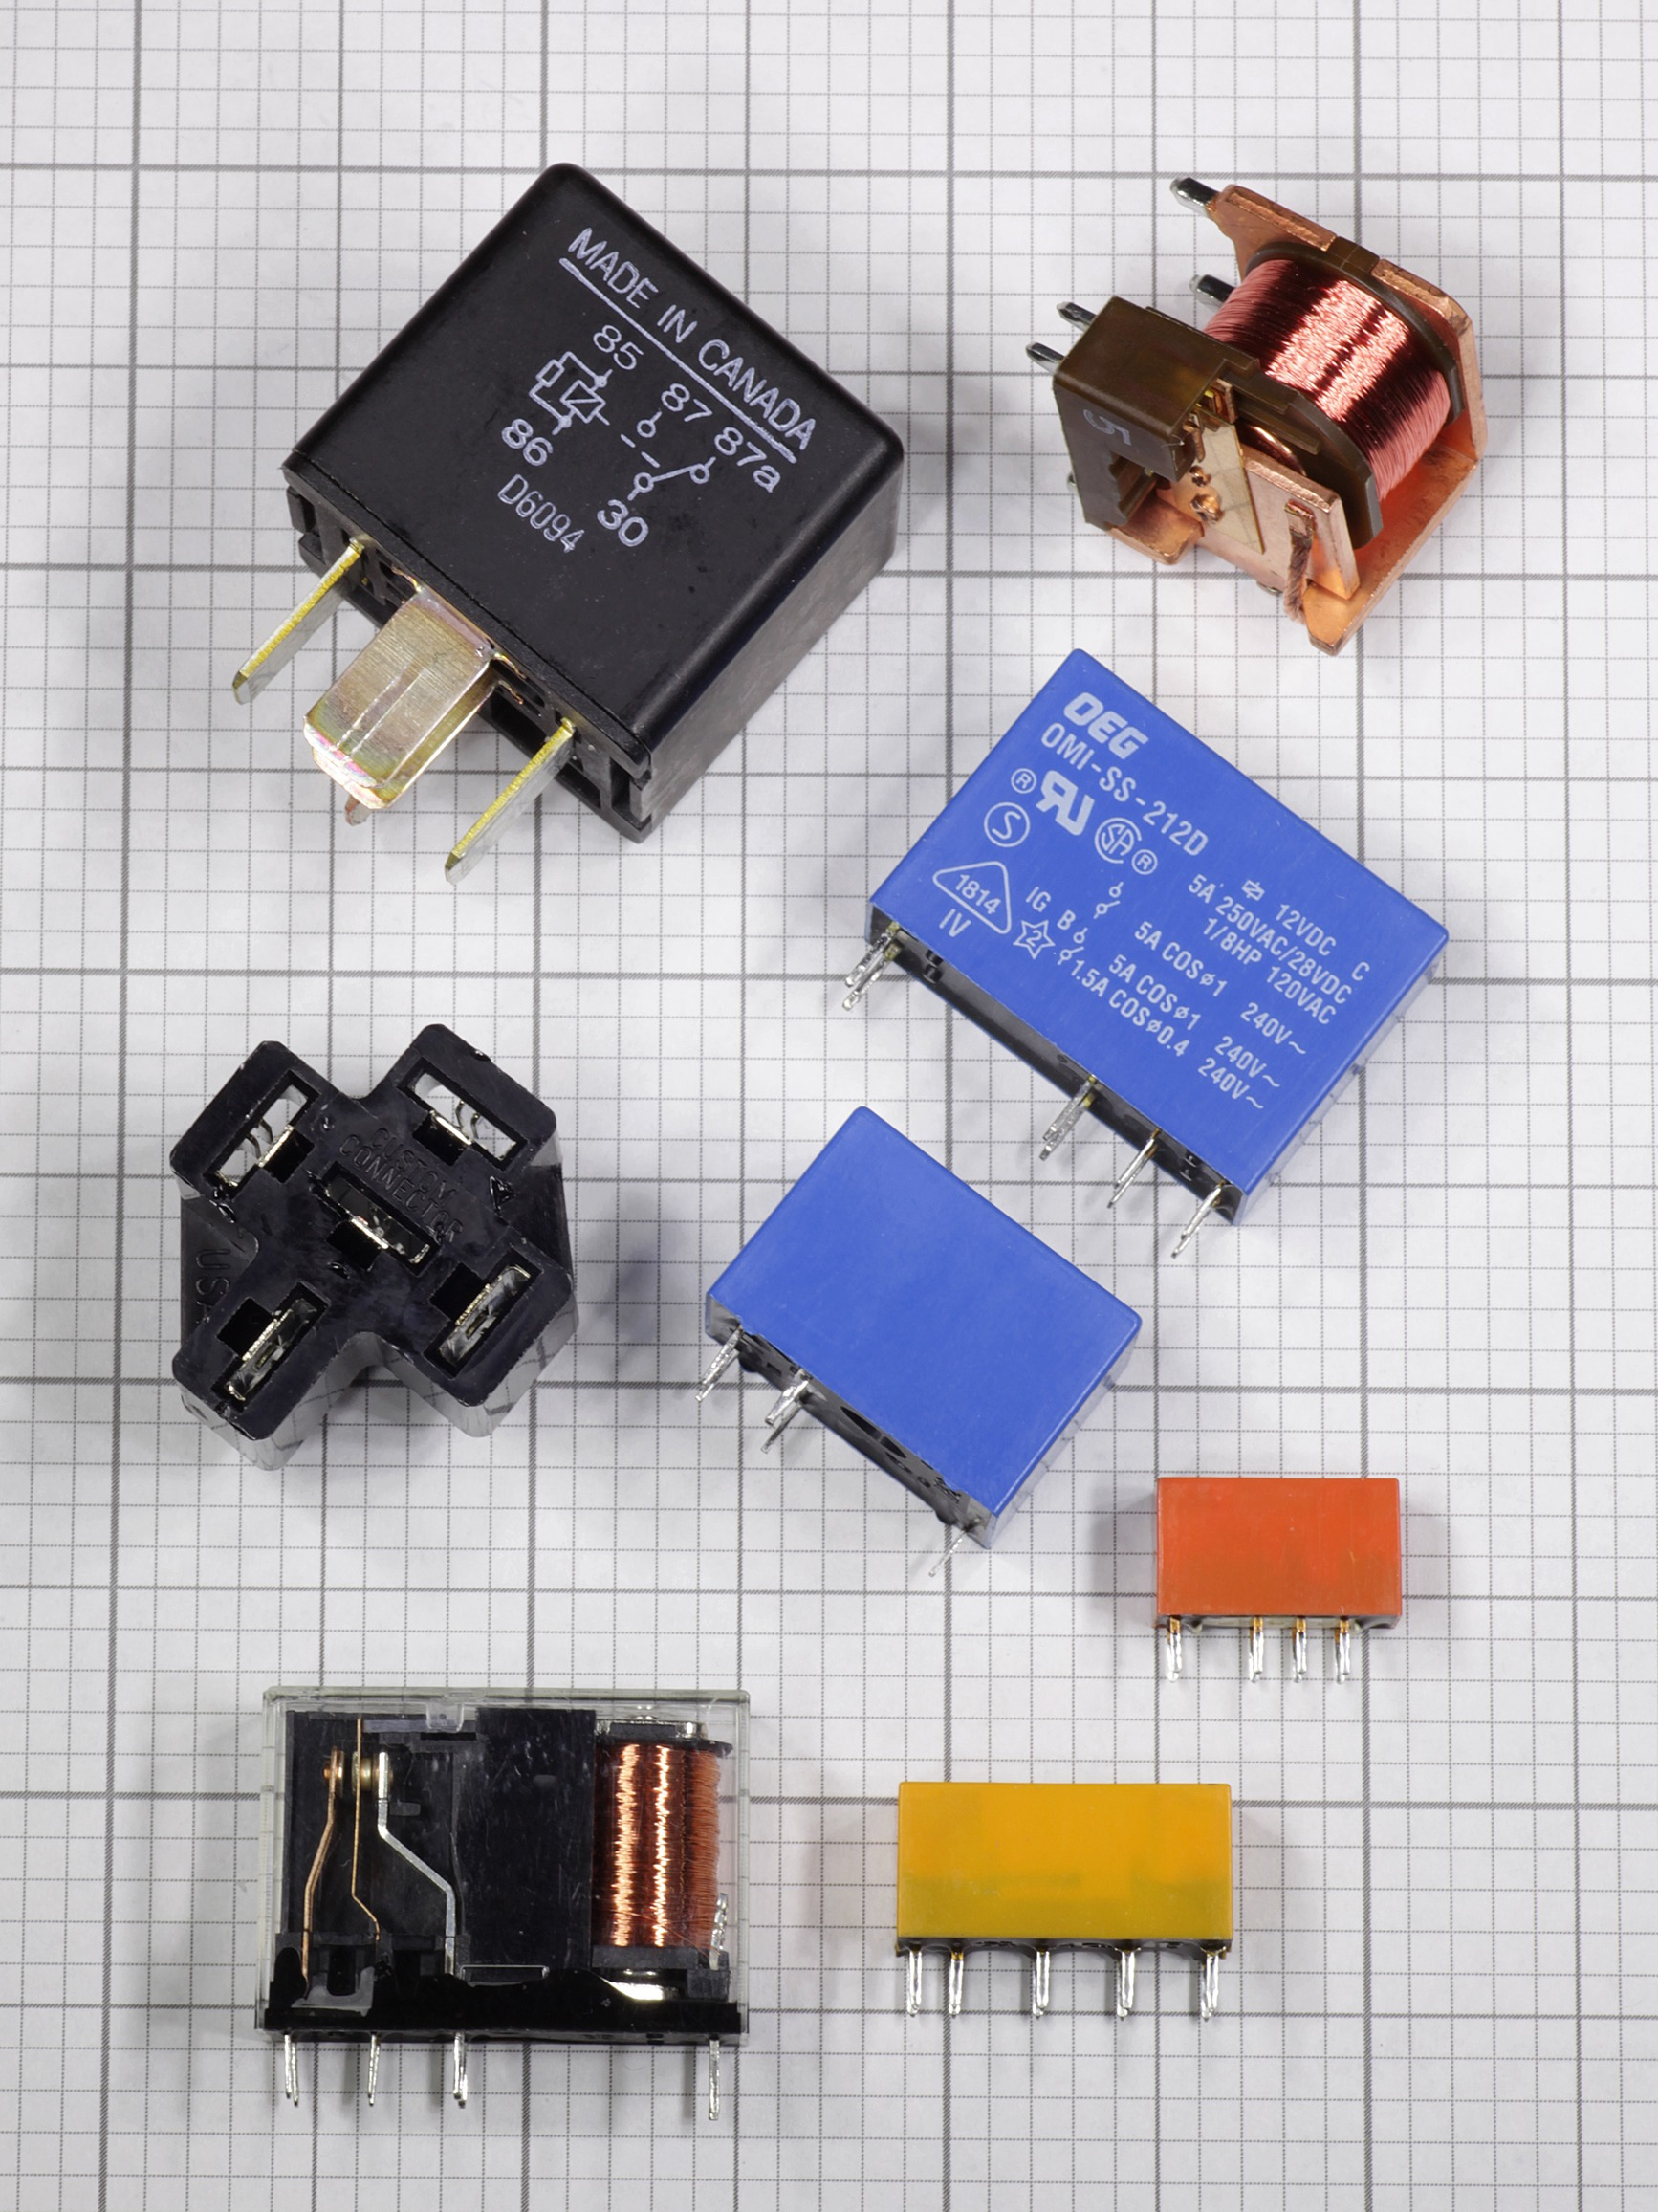 Component of the Month: Relays